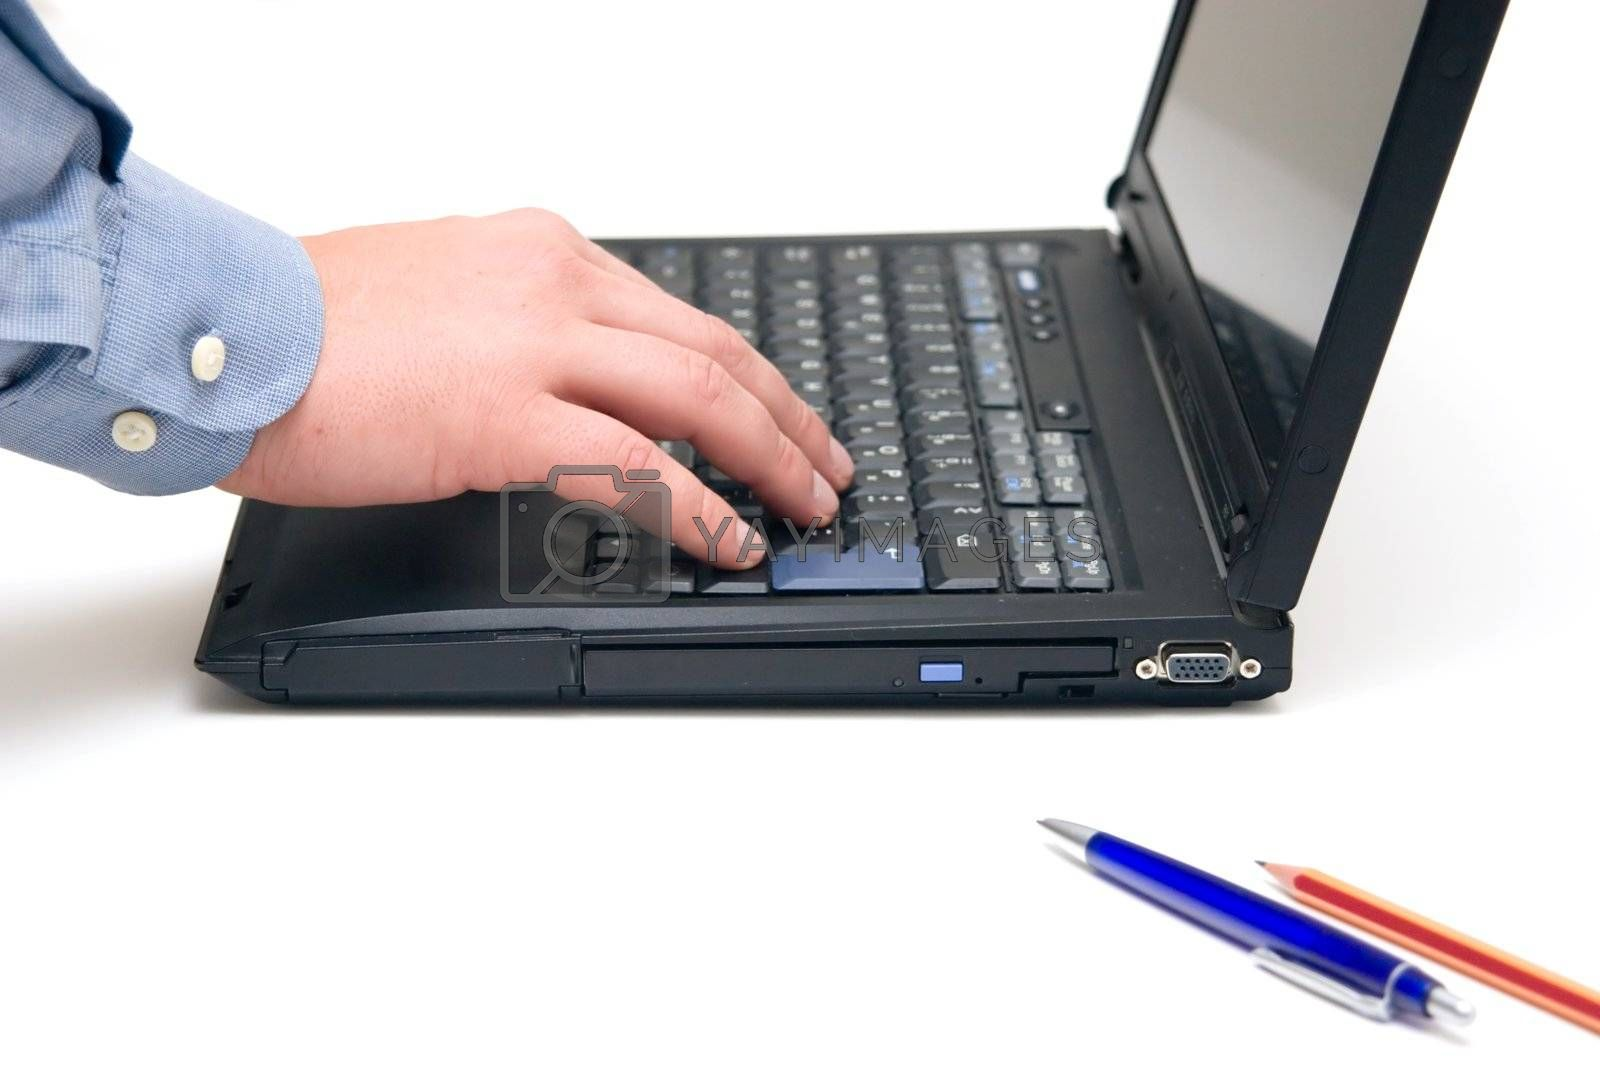 hand typing on laptop over white background.